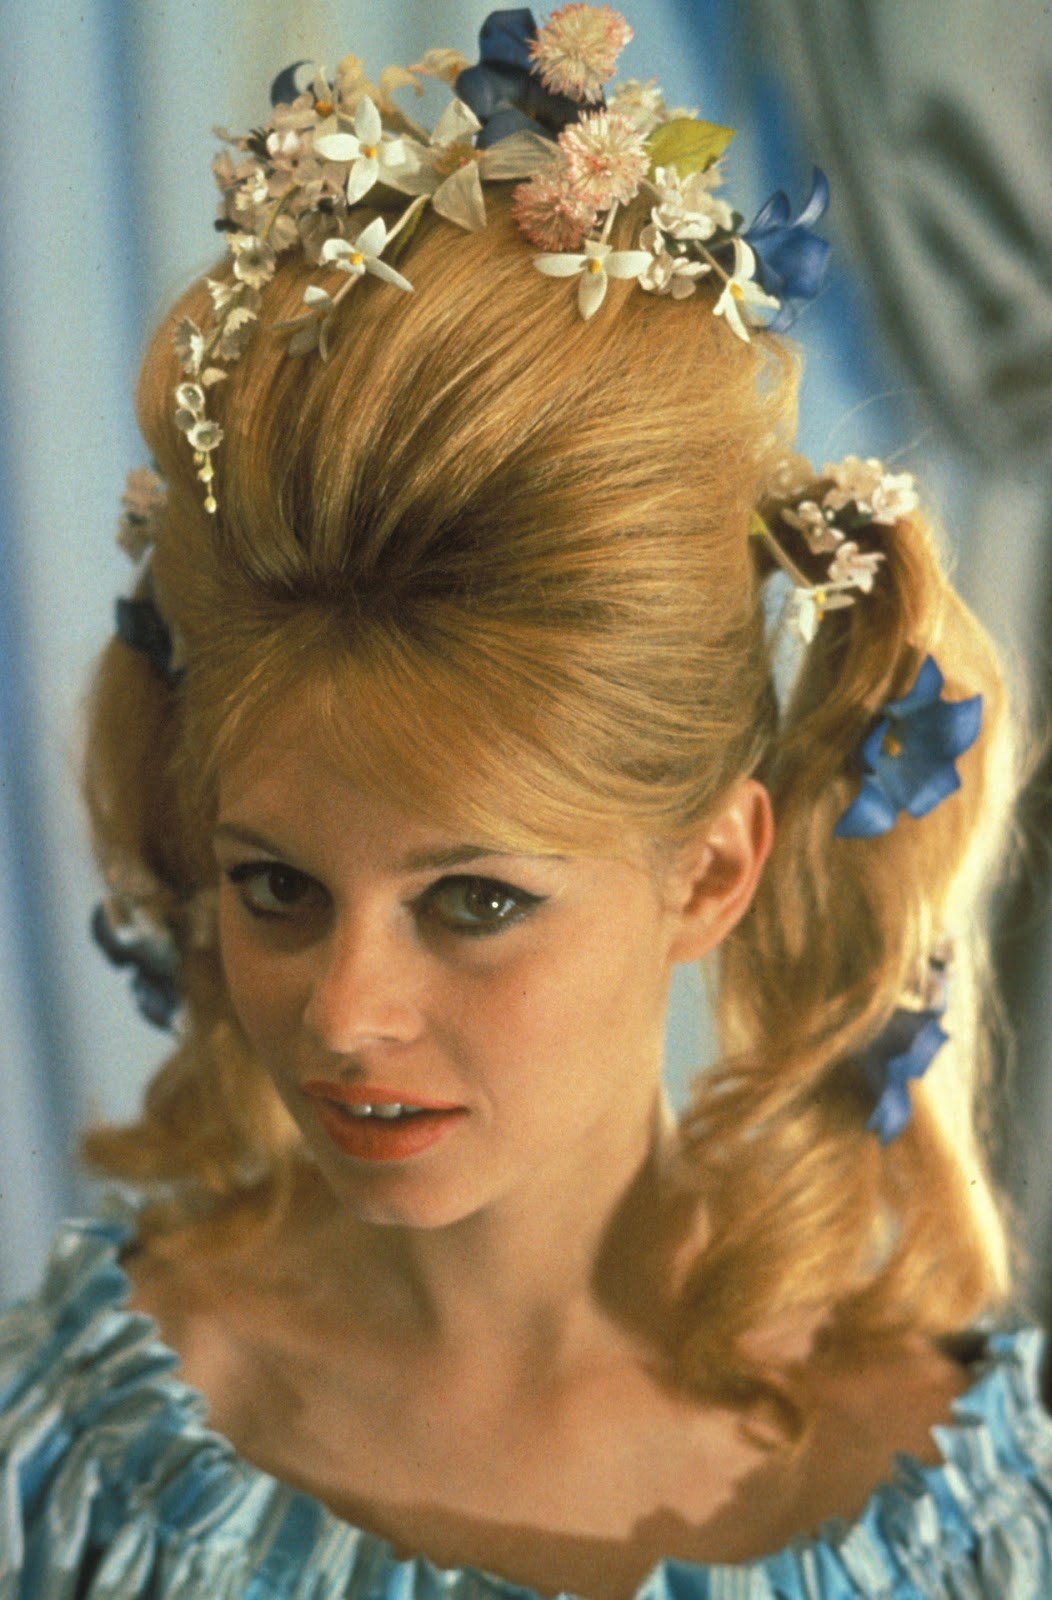 Brigitte Bardot With Flowers In Her Hair 24 Femmes Per Second